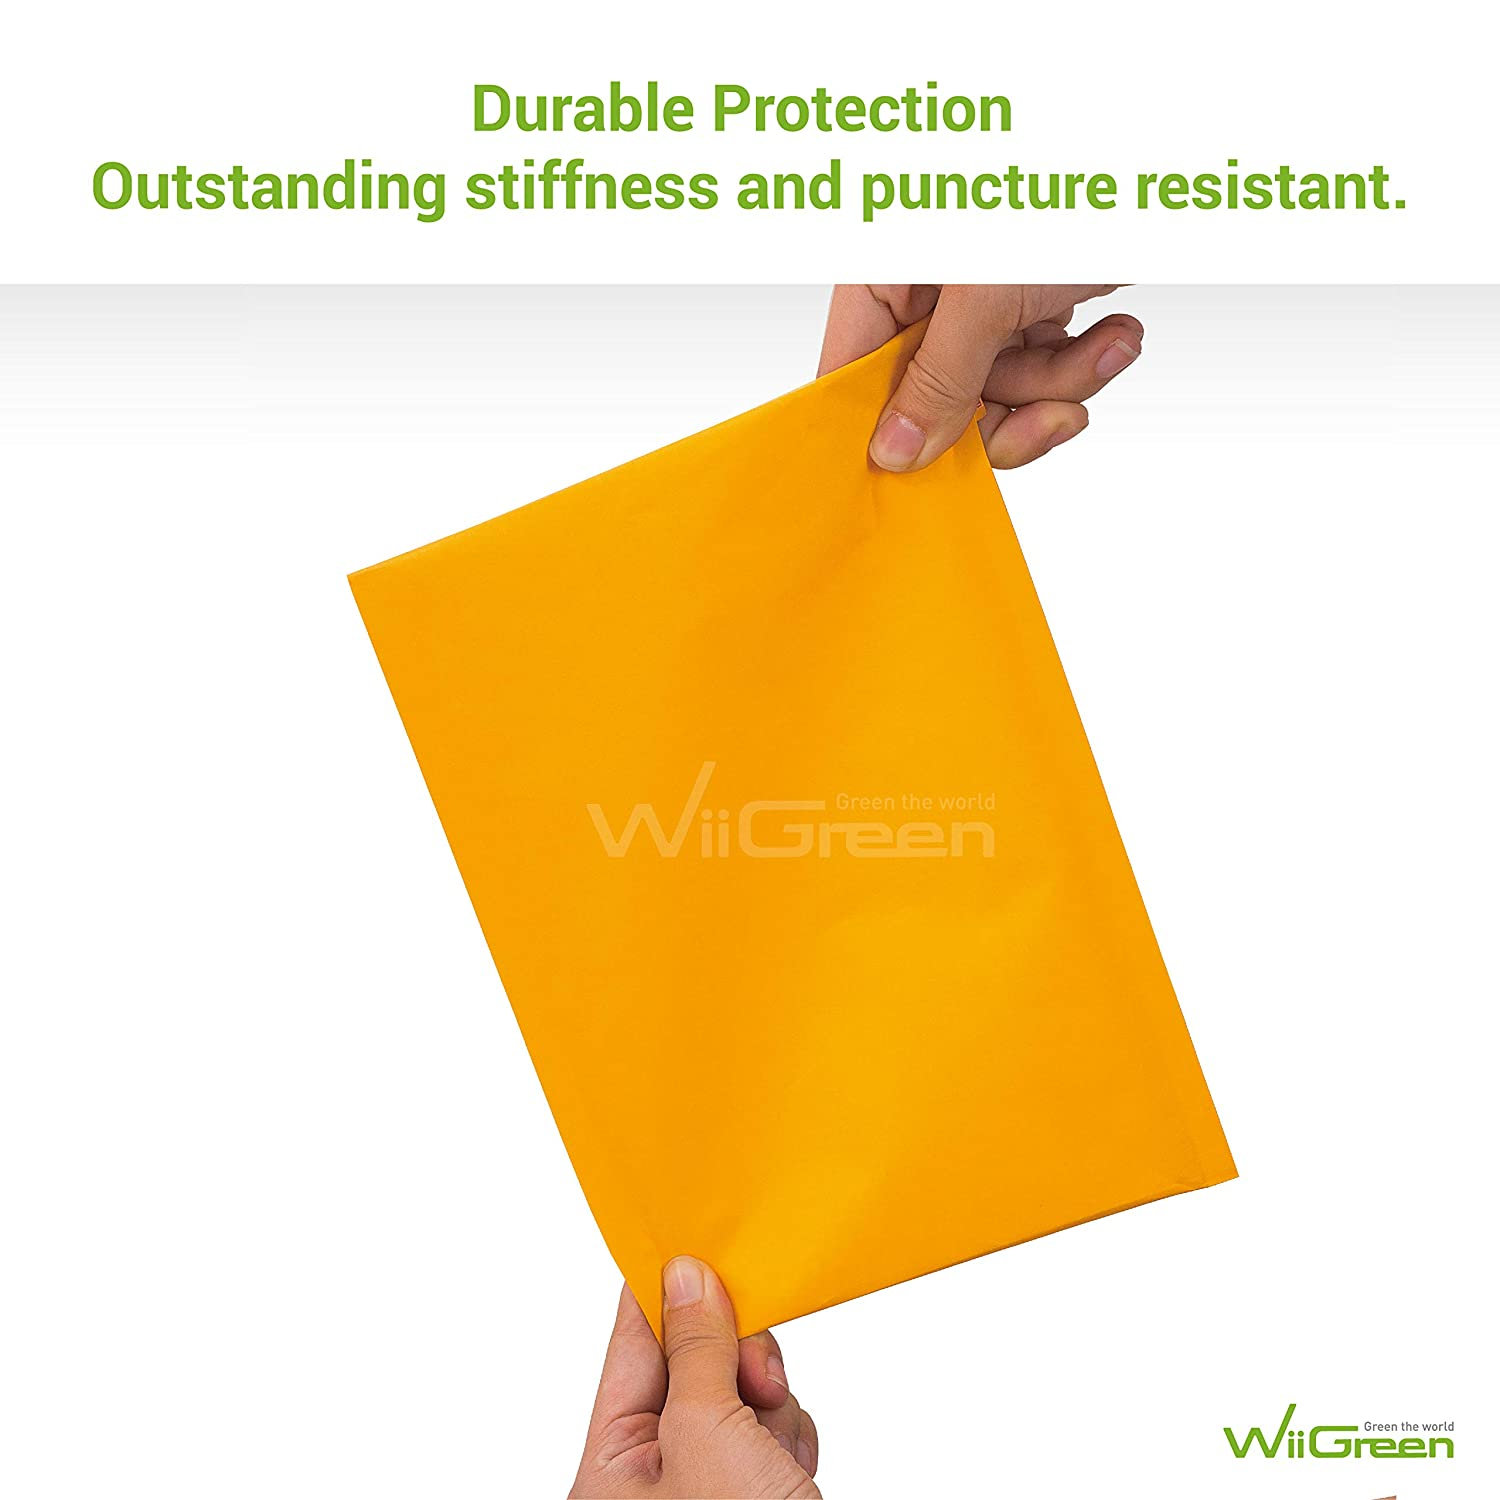 Wholesale Price WiiGreen #3 200 PCS 8x15 Inches Kraft Bubble Mailers Padded Envelopes with Peel and Seal for Packing and Shipping